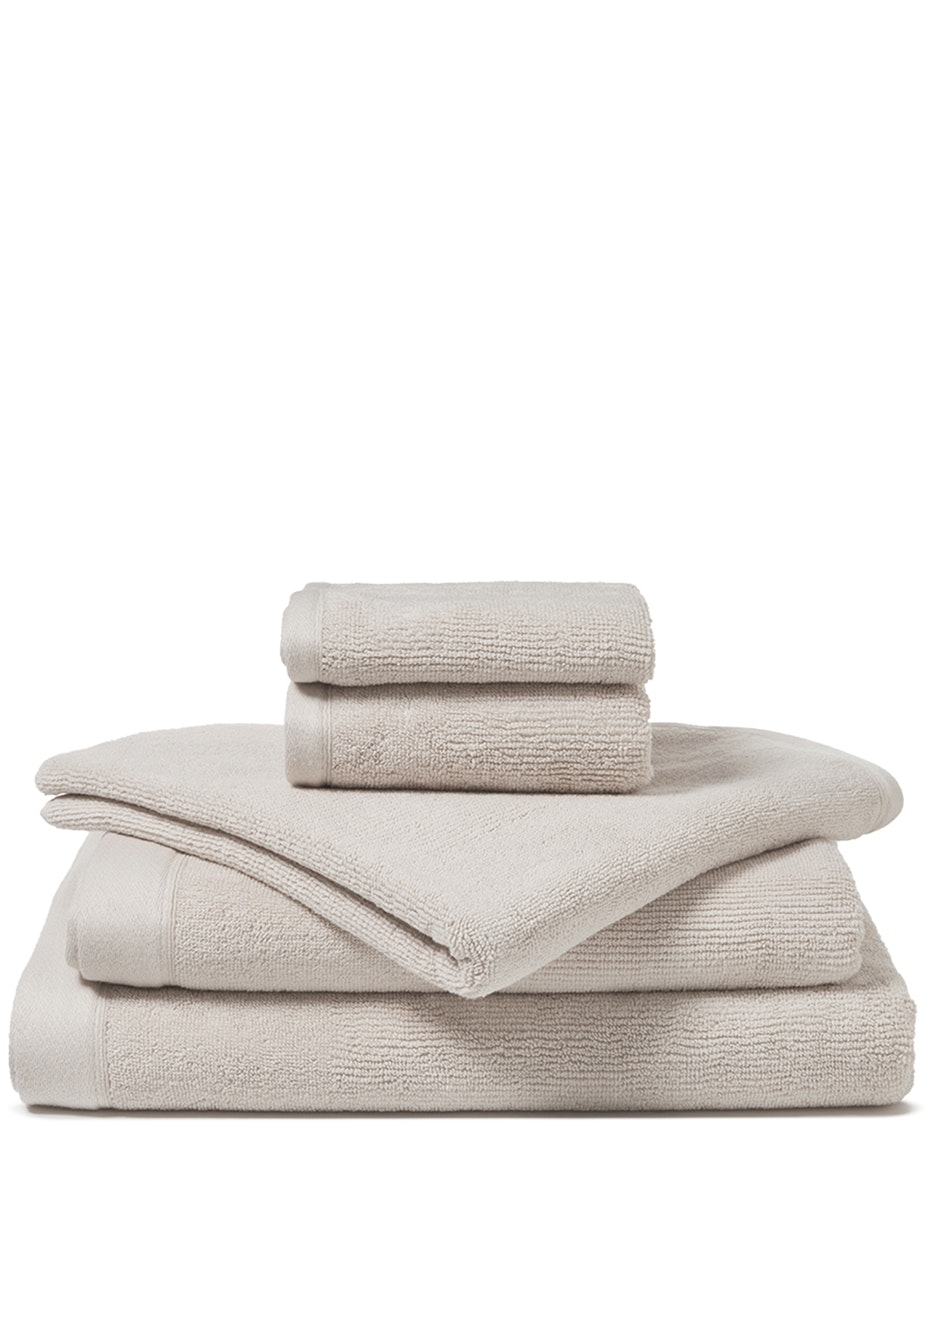 Canningvale - Corduroy Rib Bath Sheet Turtledove